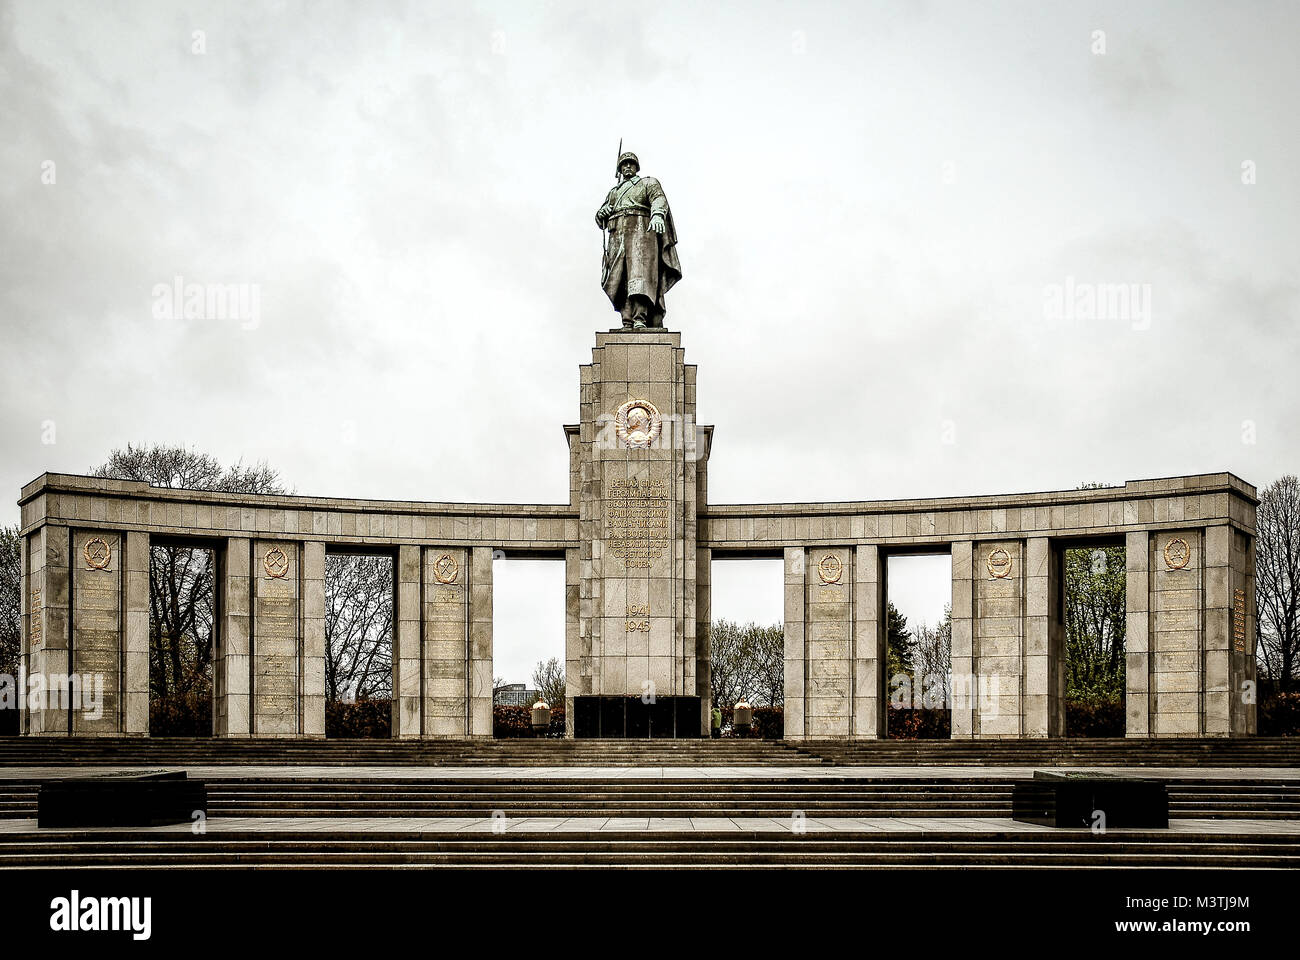 Memorial Ddr Monument Stock Photos & Memorial Ddr Monument Stock ...